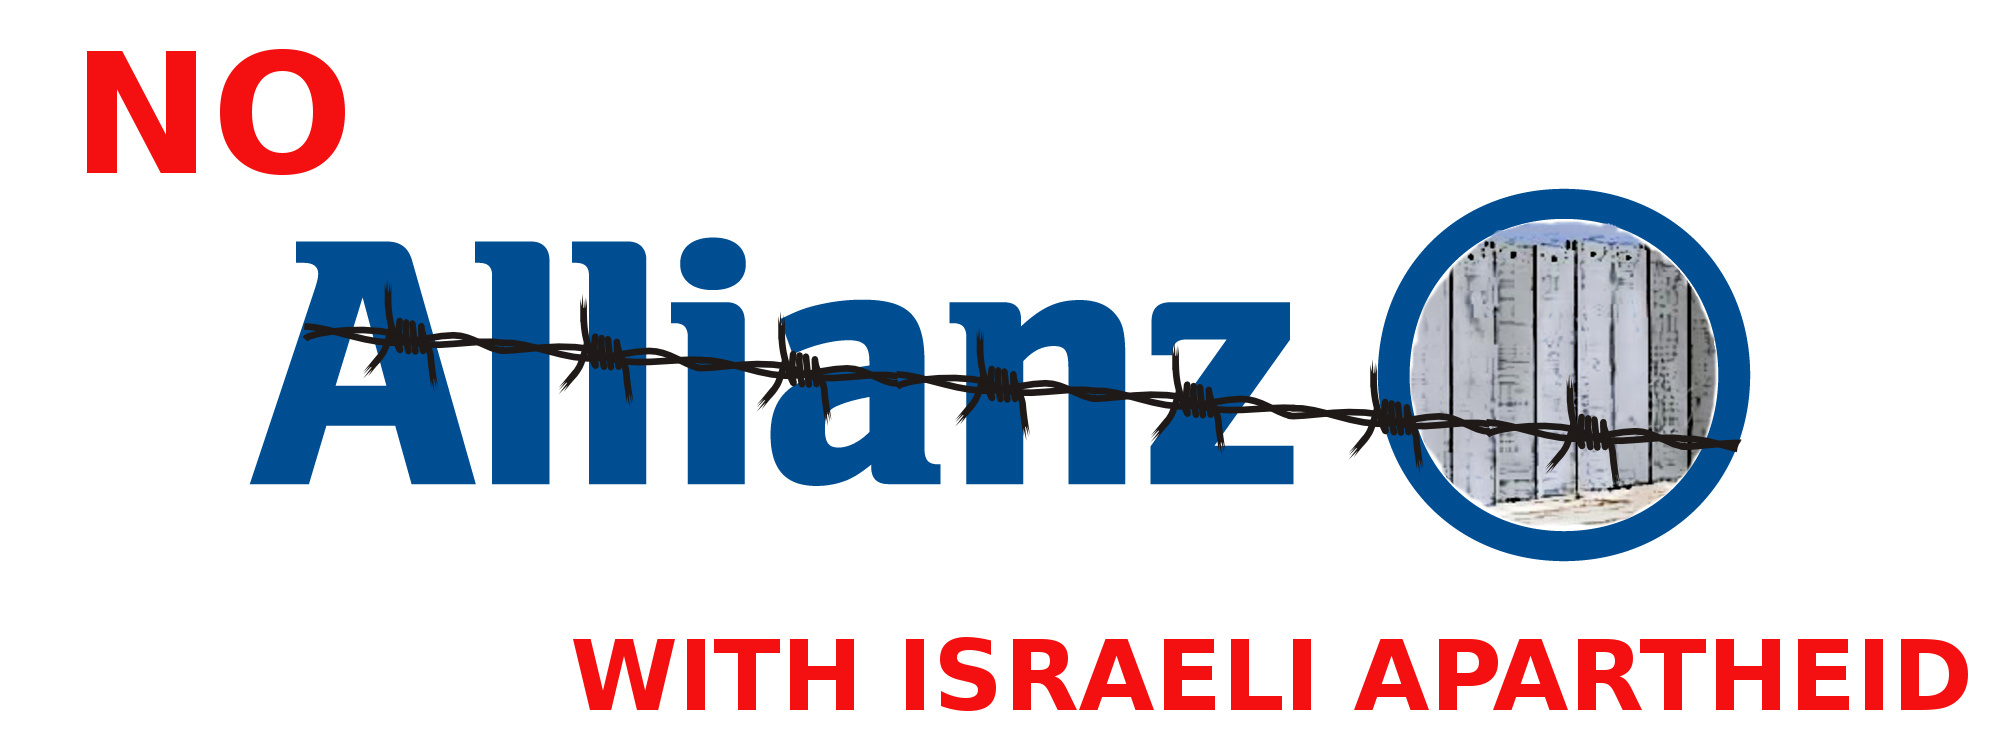 No Allianz with Israeli Apartheid